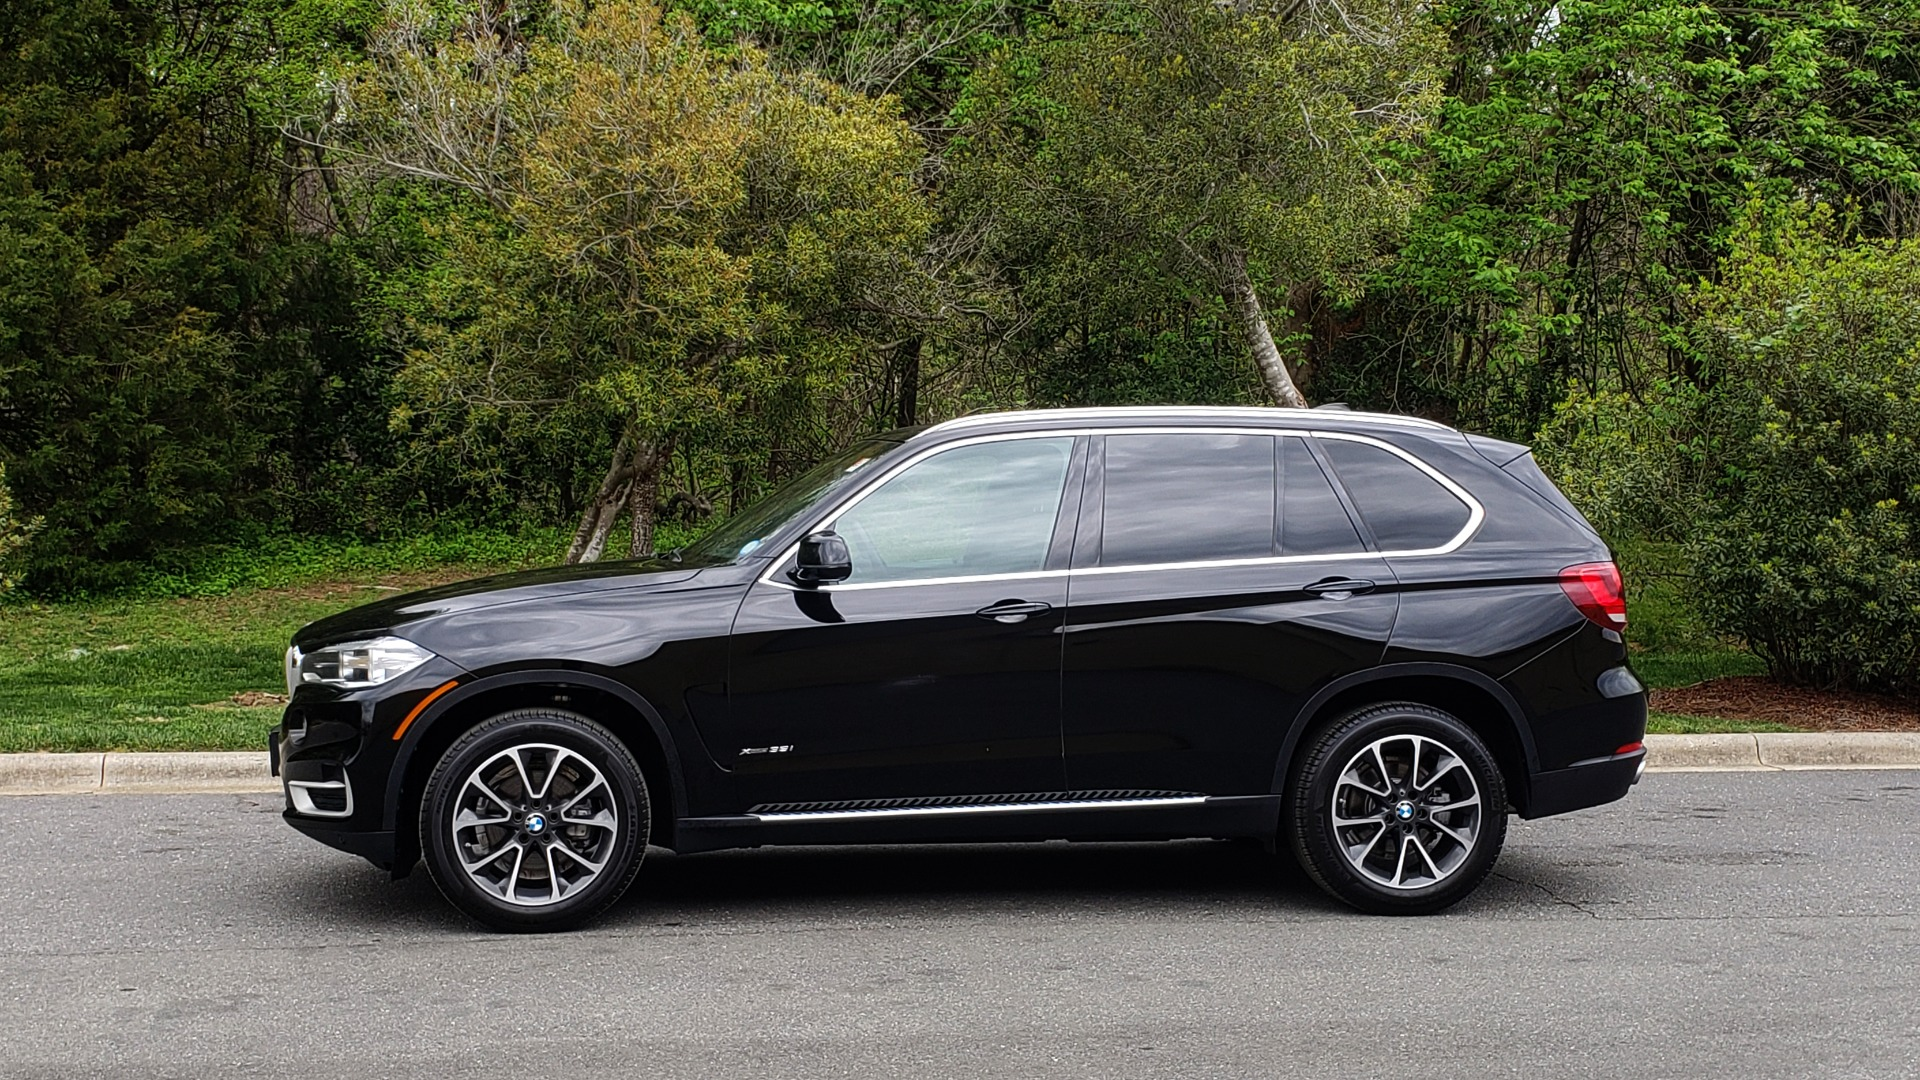 Used 2017 BMW X5 XDRIVE35I / NAV / SUNROOF / REARVIEW / HTD STS for sale Sold at Formula Imports in Charlotte NC 28227 2